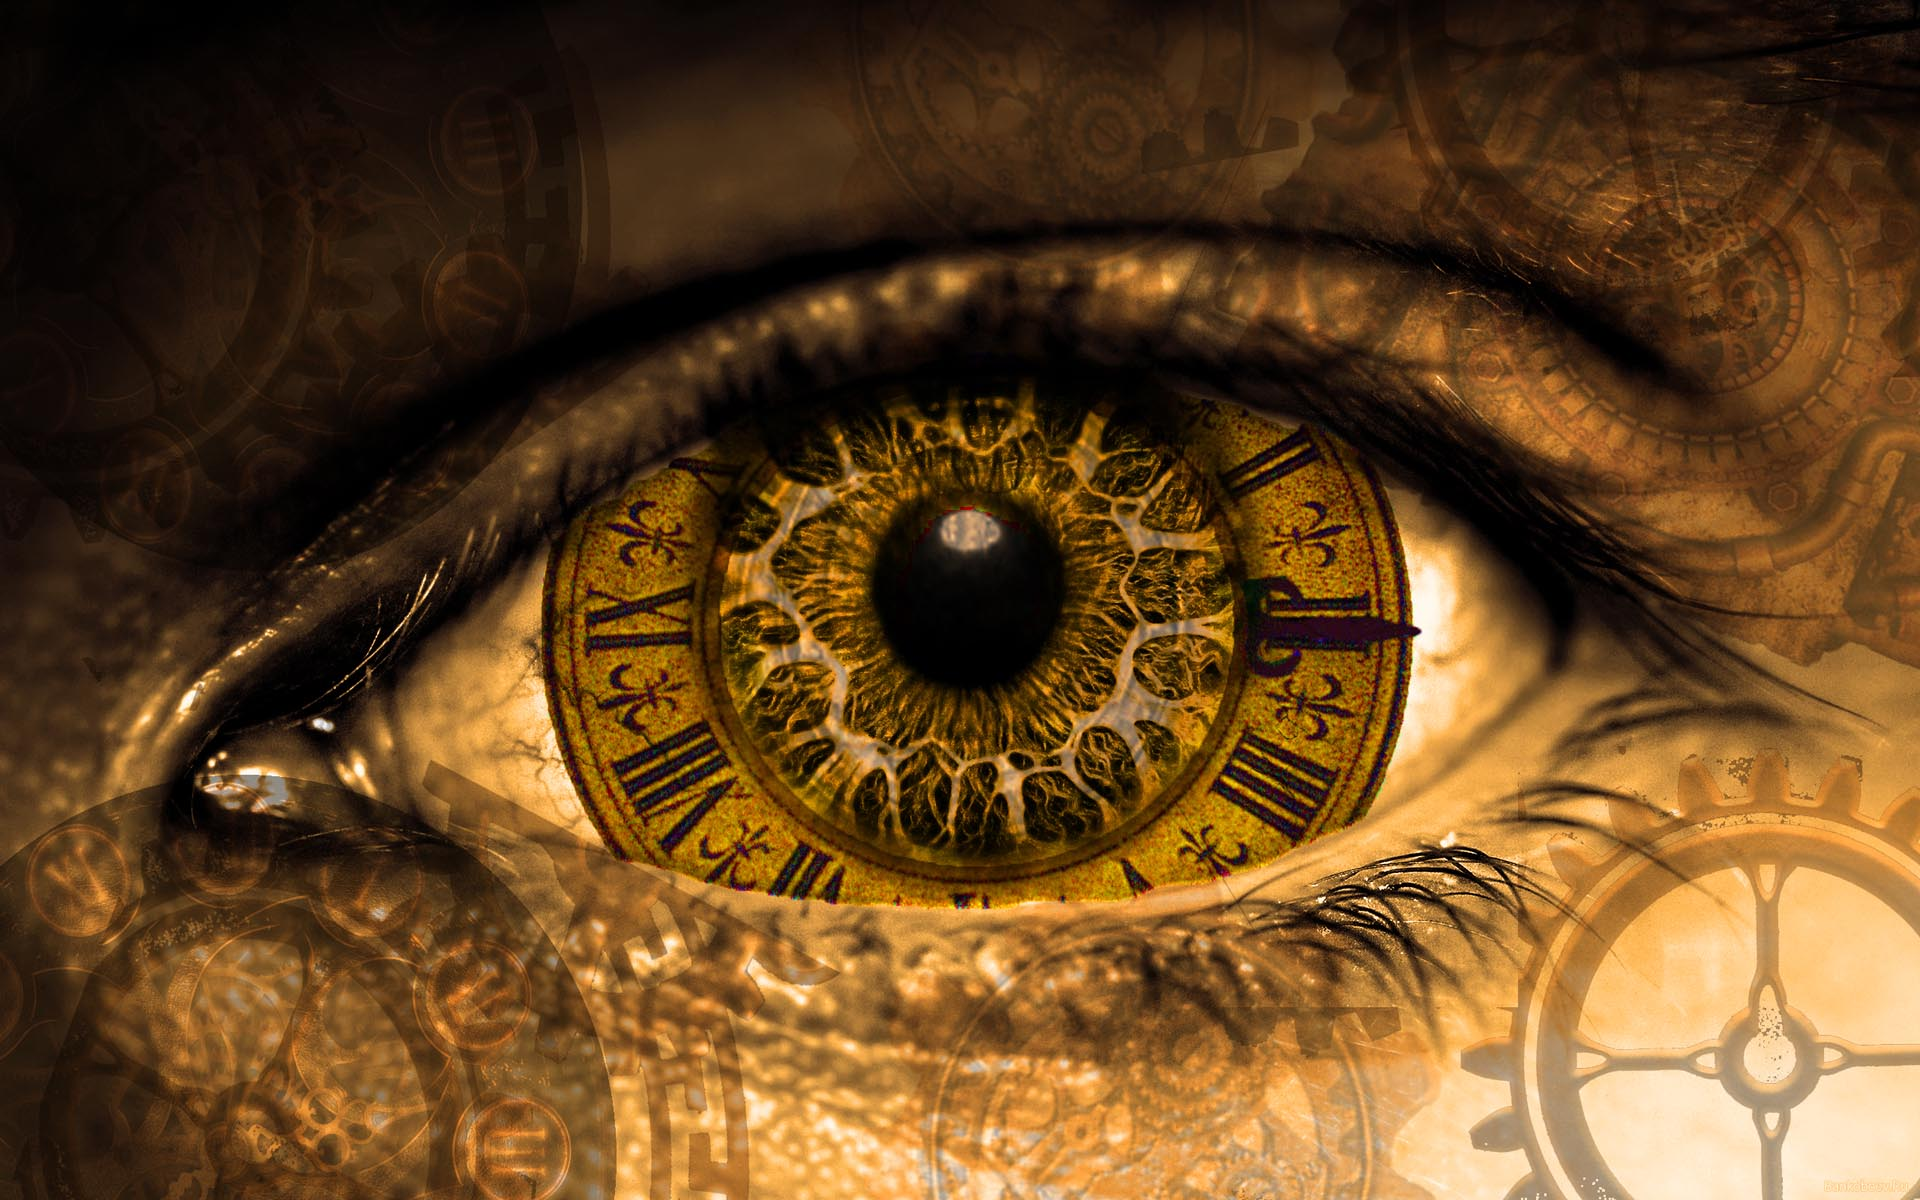 Time-Machine – join local scientist on a journey of discovery